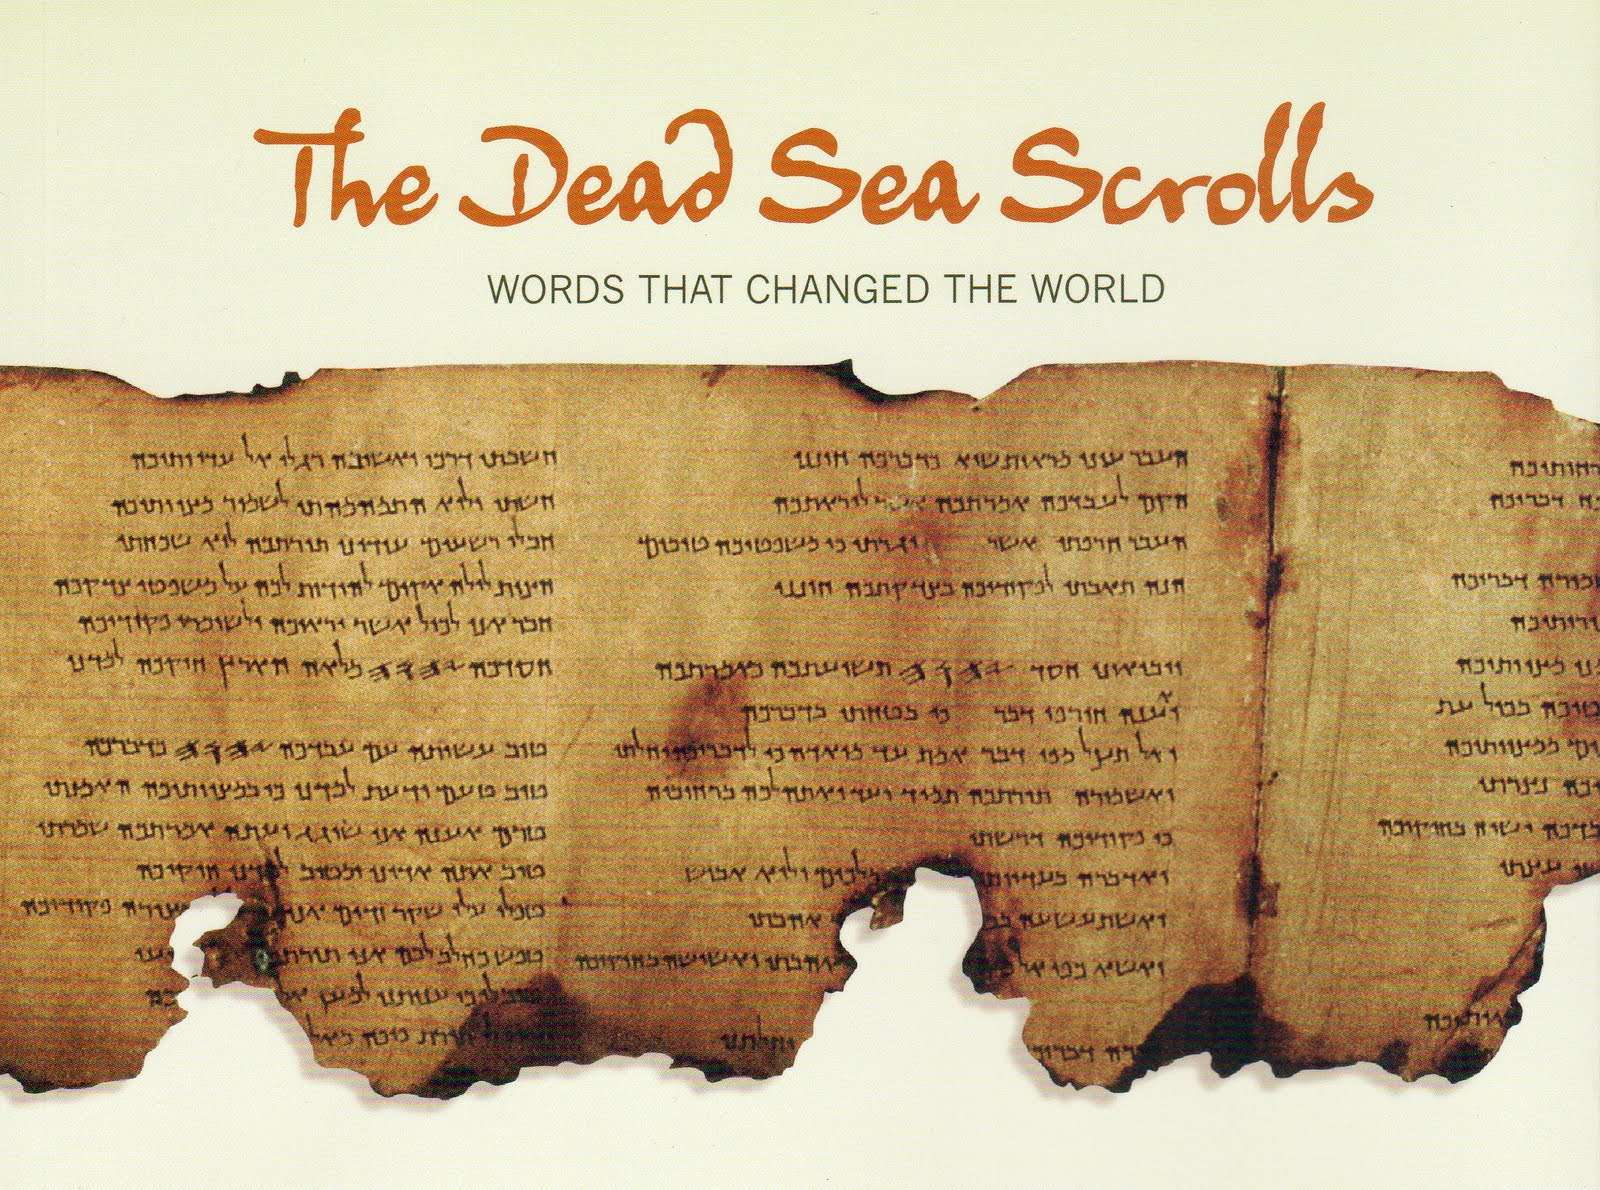 dead sea scrolls Dead sea scrolls dead sea scrolls: what are they the dead sea scrolls have been called the greatest manuscript discovery of modern times they were discovered between 1947 and 1956 in eleven caves along the northwest shore of the dead sea this is an arid region 13 miles east of jerusalem and 1,300 feet below sea level.